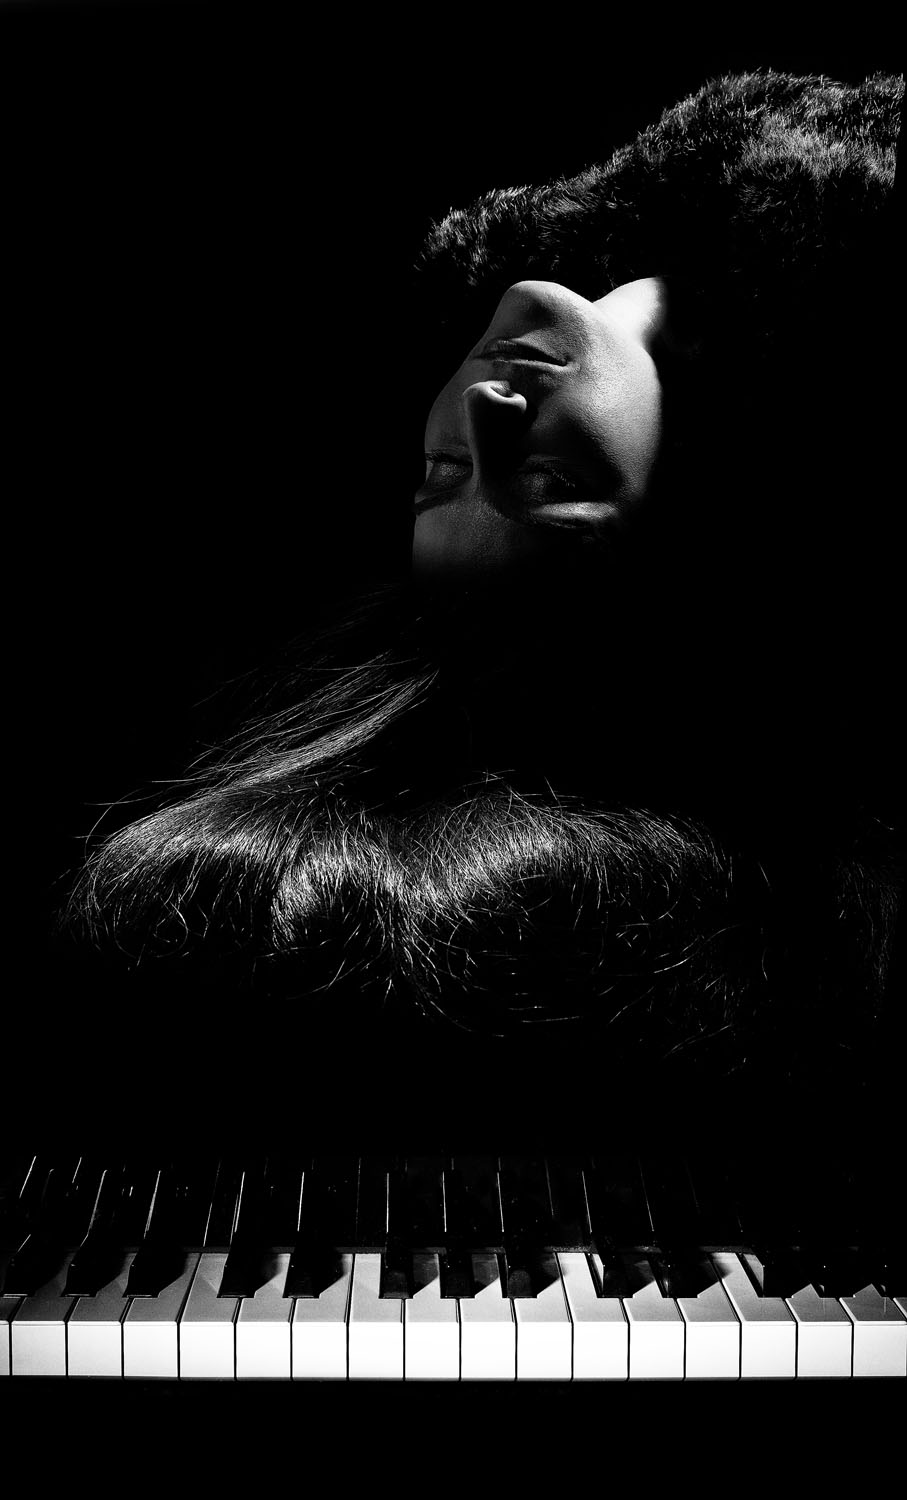 Nadine_on_piano_final_composite.jpg